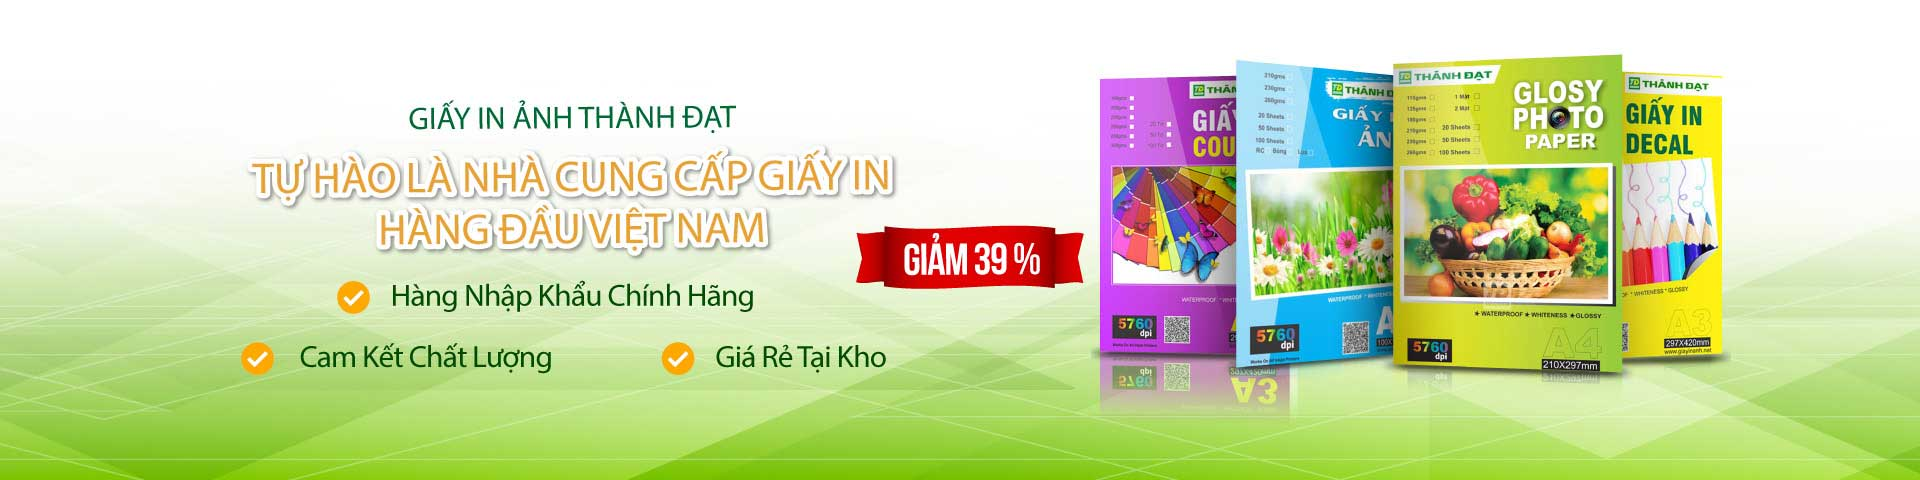 banner-giay-in-anh-td-1920x480